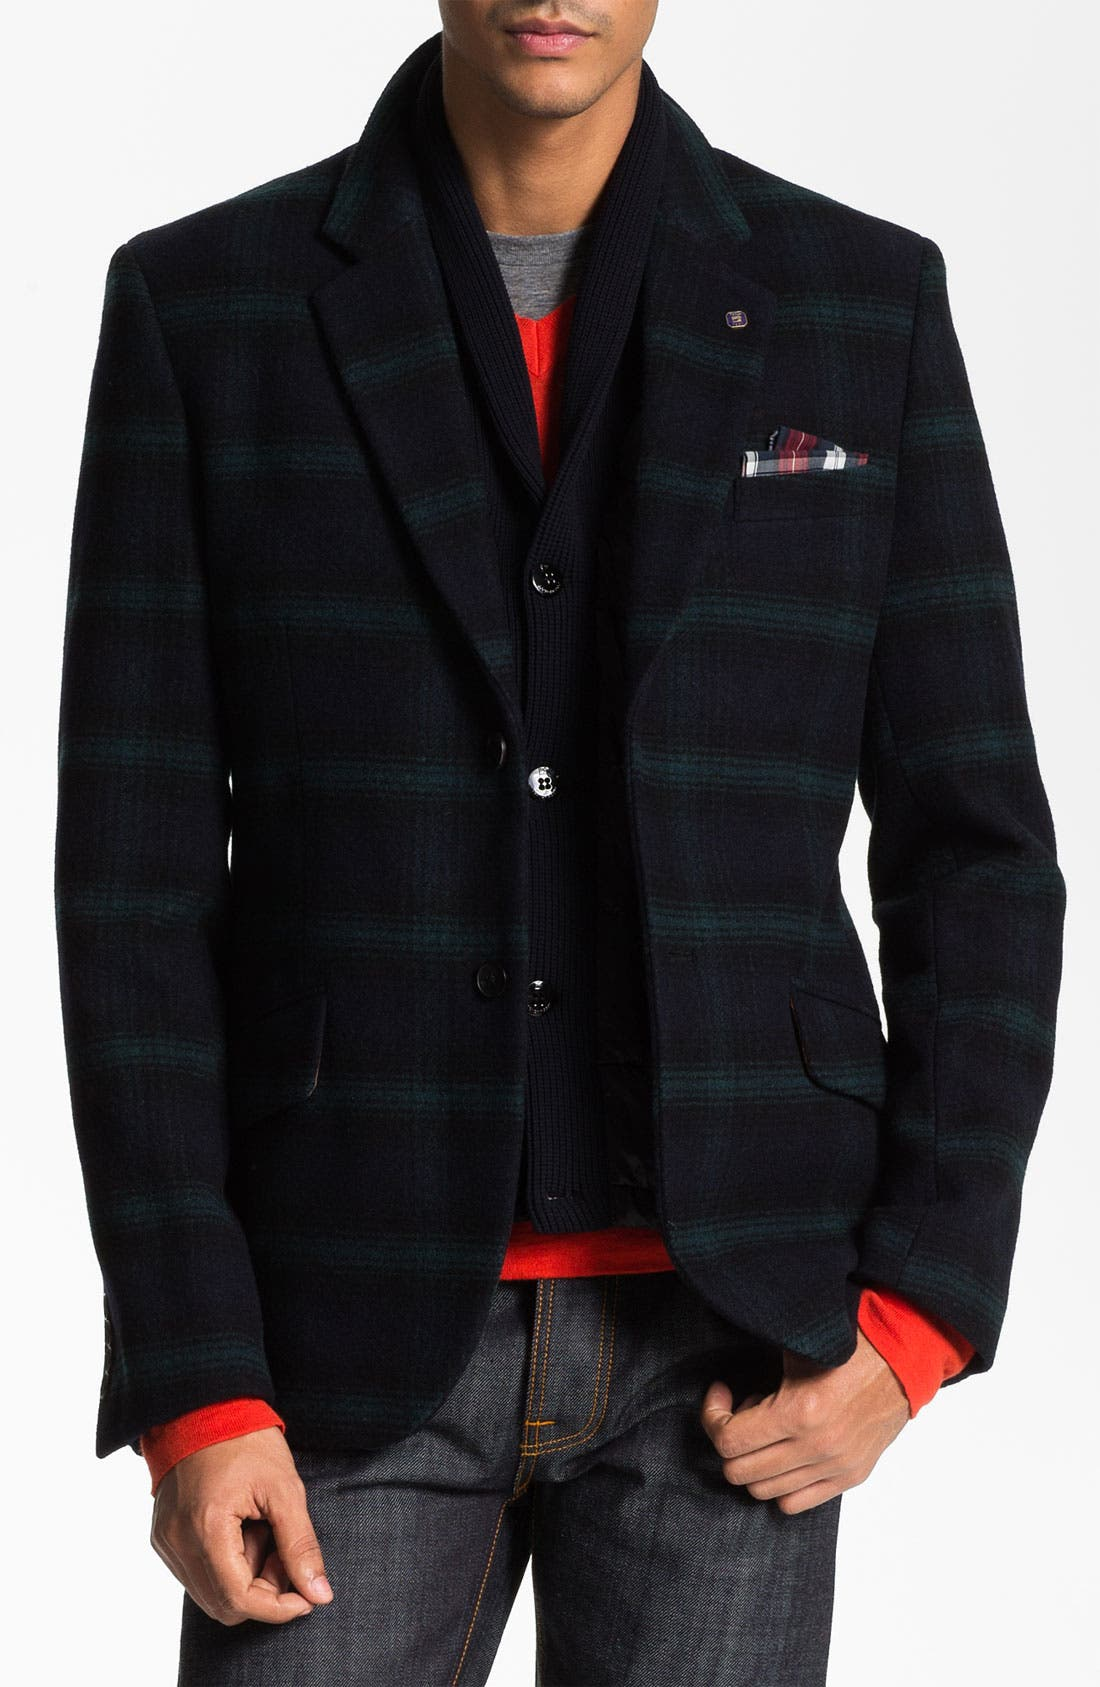 Main Image - Scotch & Soda Wool Blend Blazer with Quilted Liner Vest